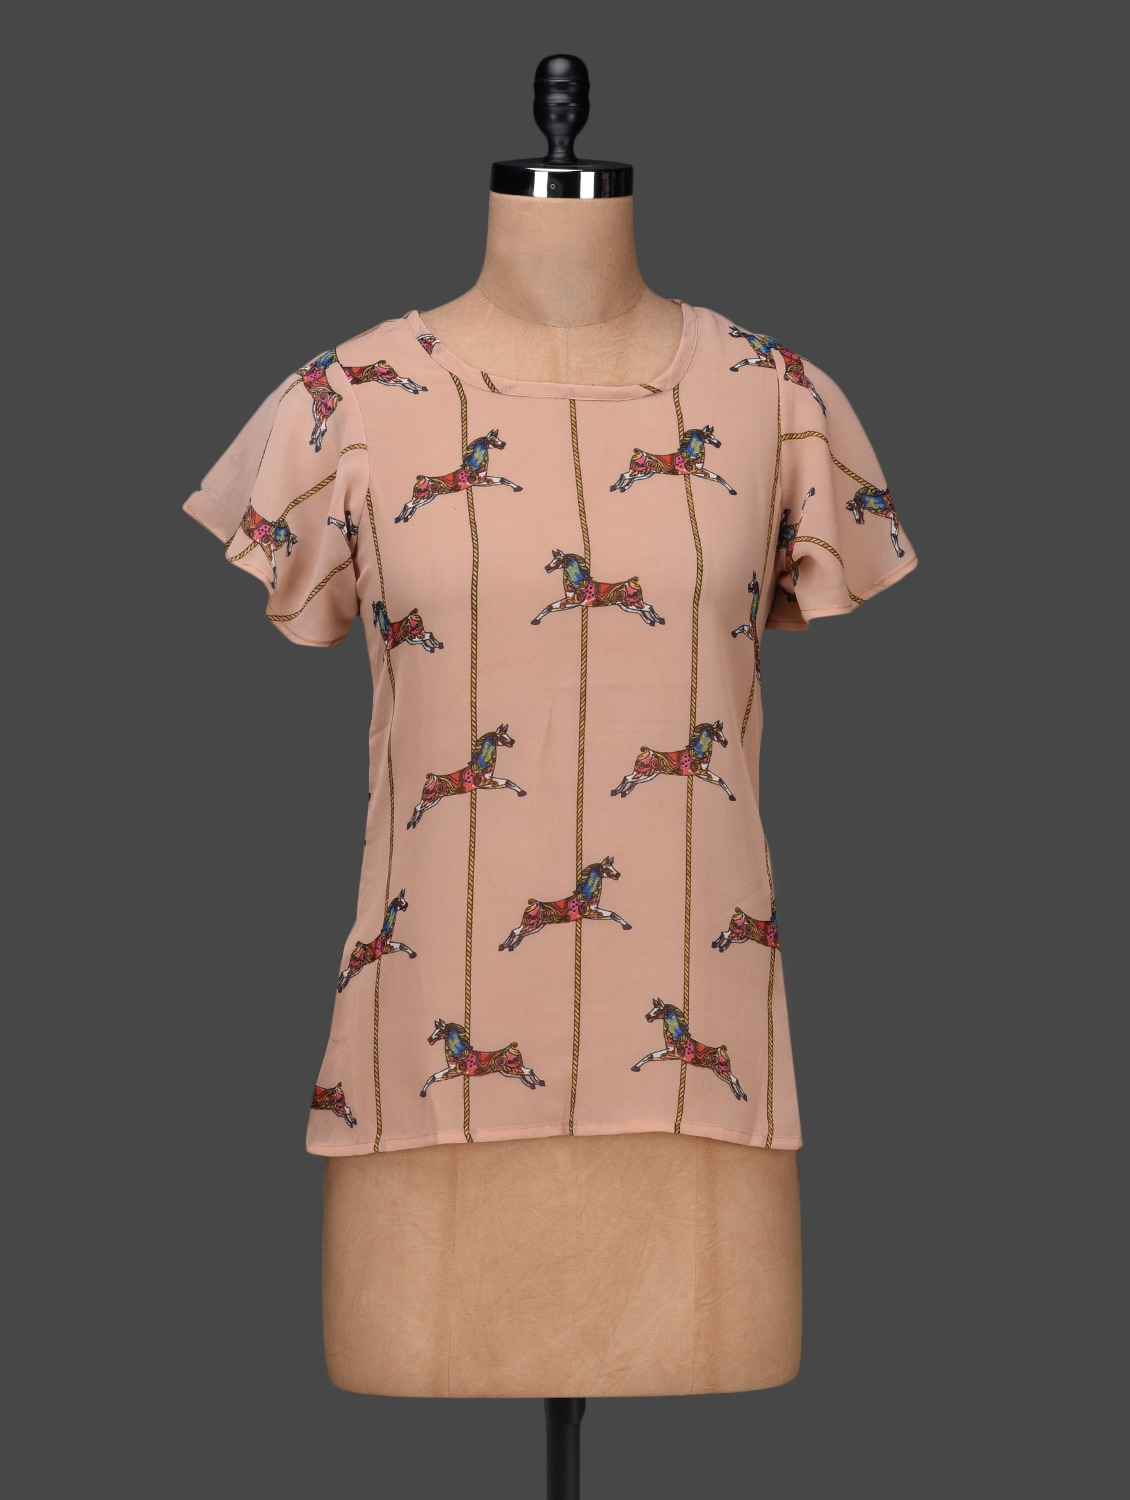 Horse Printed Round Neck Short Sleeves Georgette Top - Shilpkala